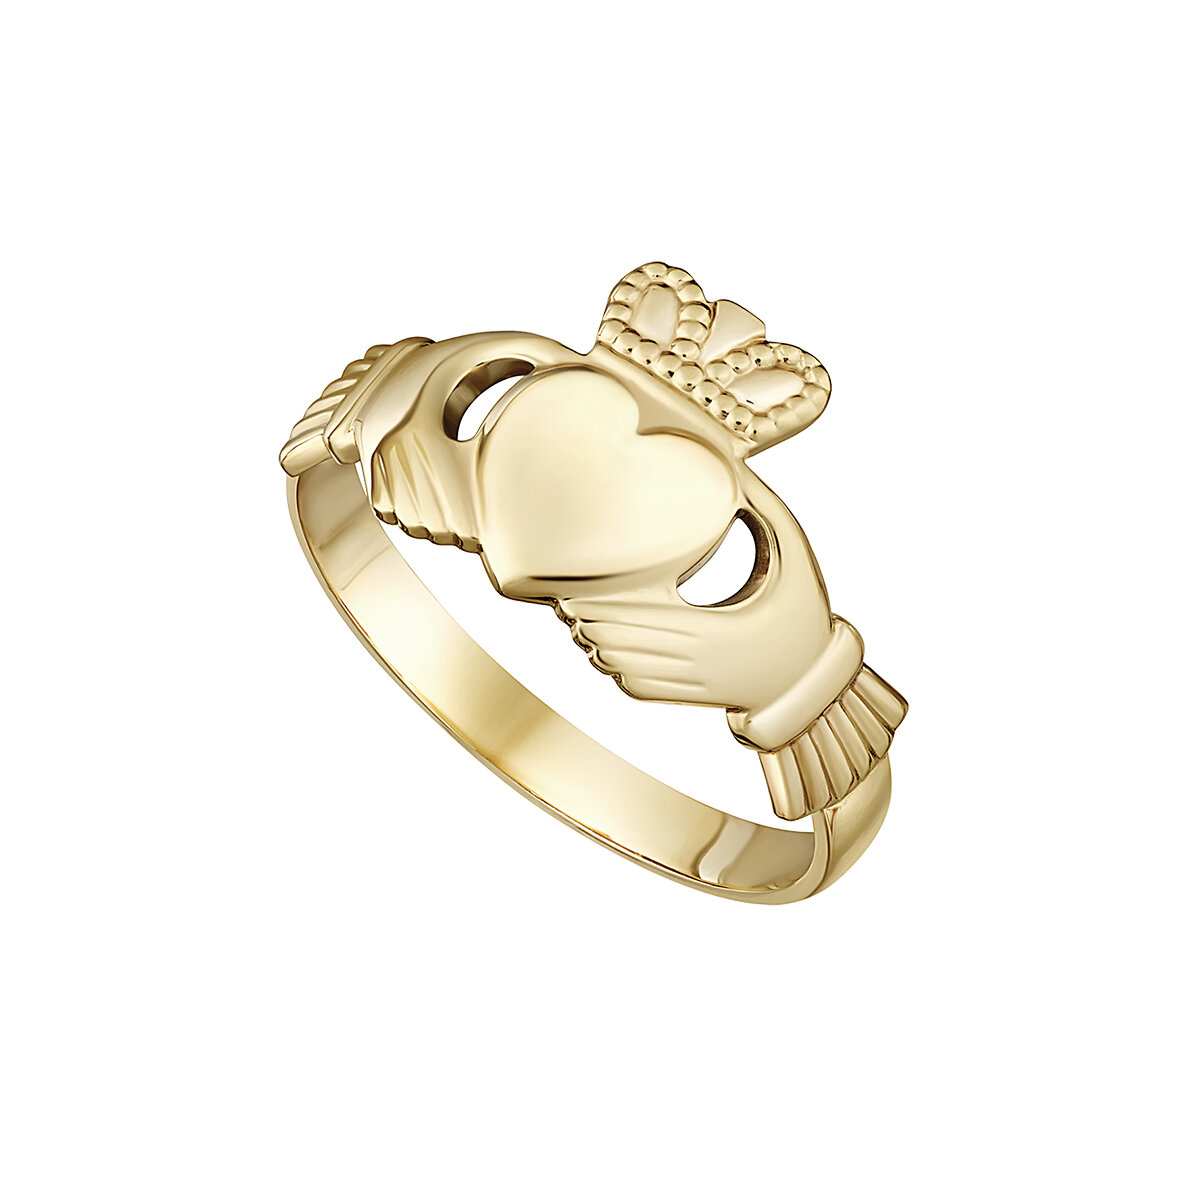 14k maids claddagh ring s2284 from Solvar